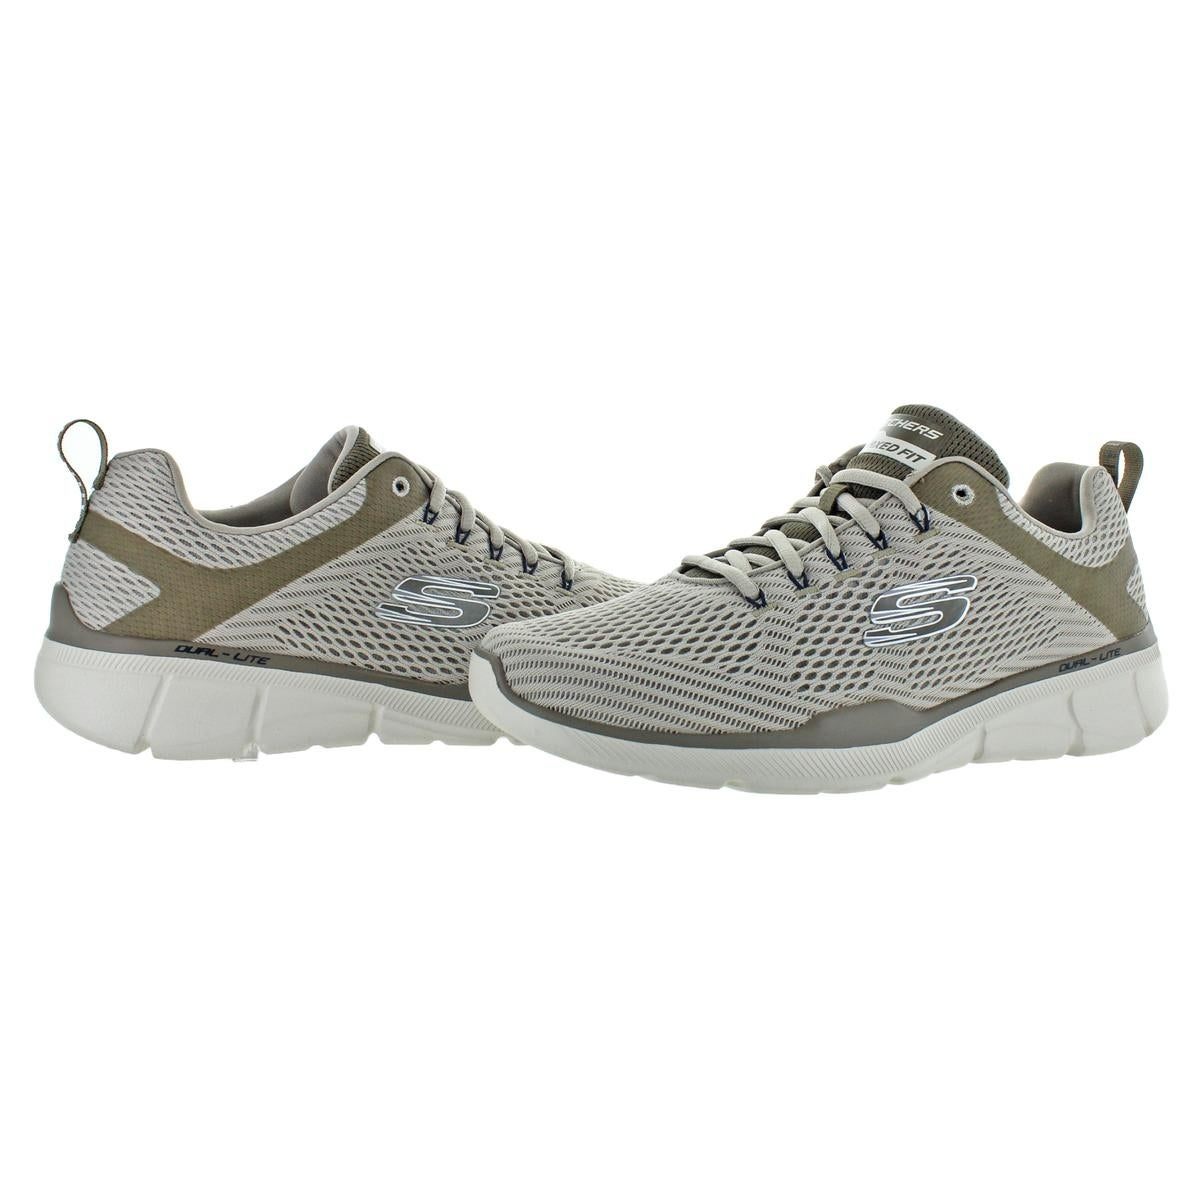 Interpersonal melodía Marinero  Skechers Mens Equalizer 3.0 Casual Shoes Dual-Lite Memory Foam - 9.5 Medium  (D) - Overstock - 27876065